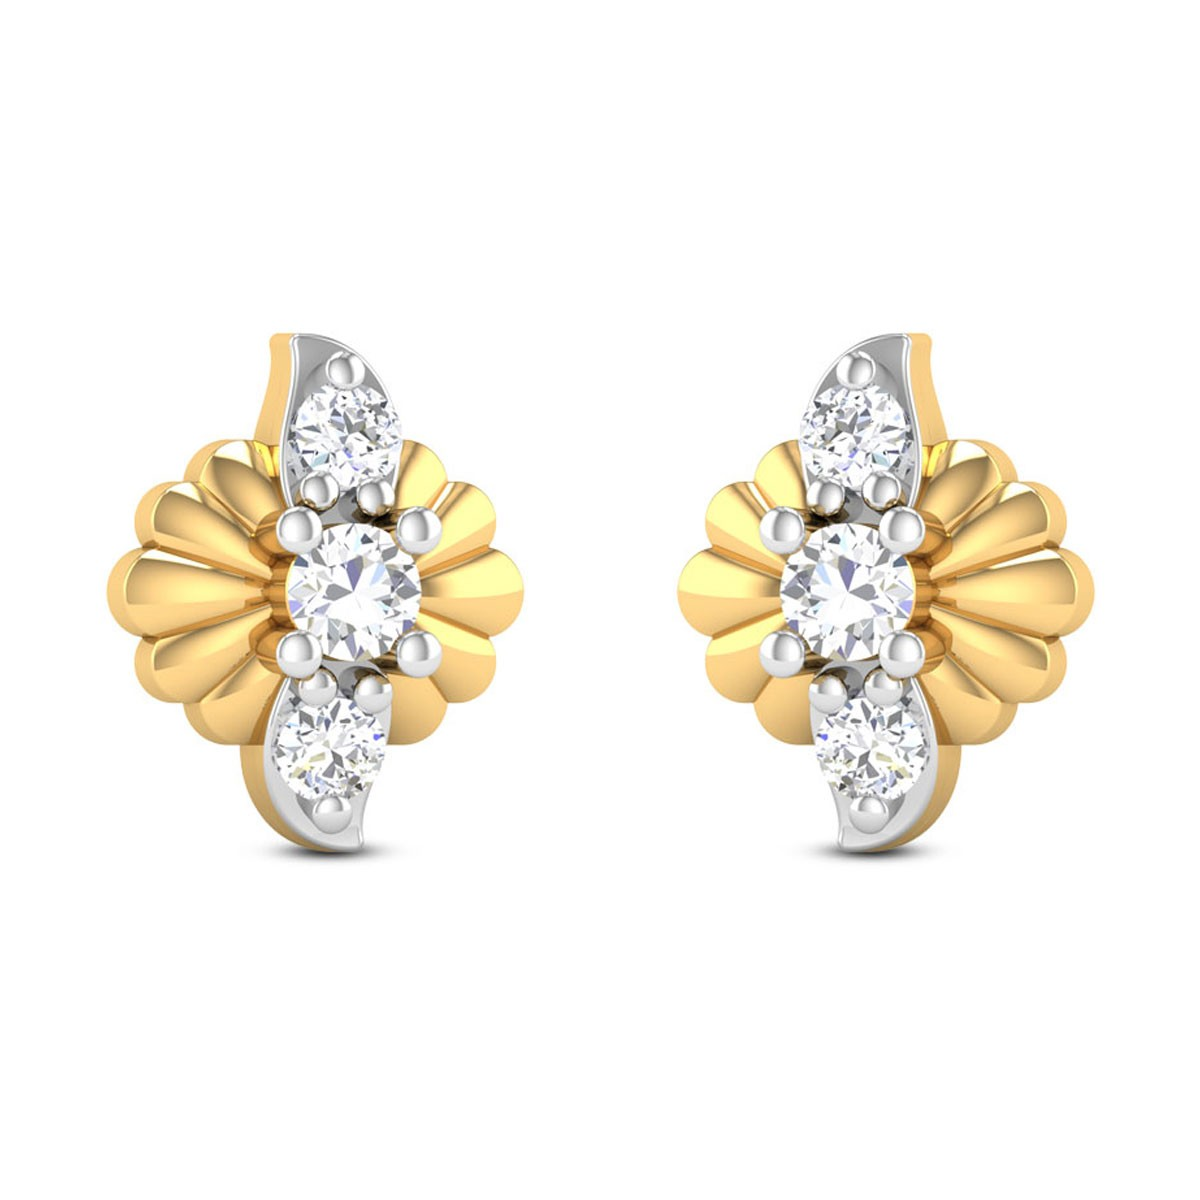 Opheria Diamond Earrings